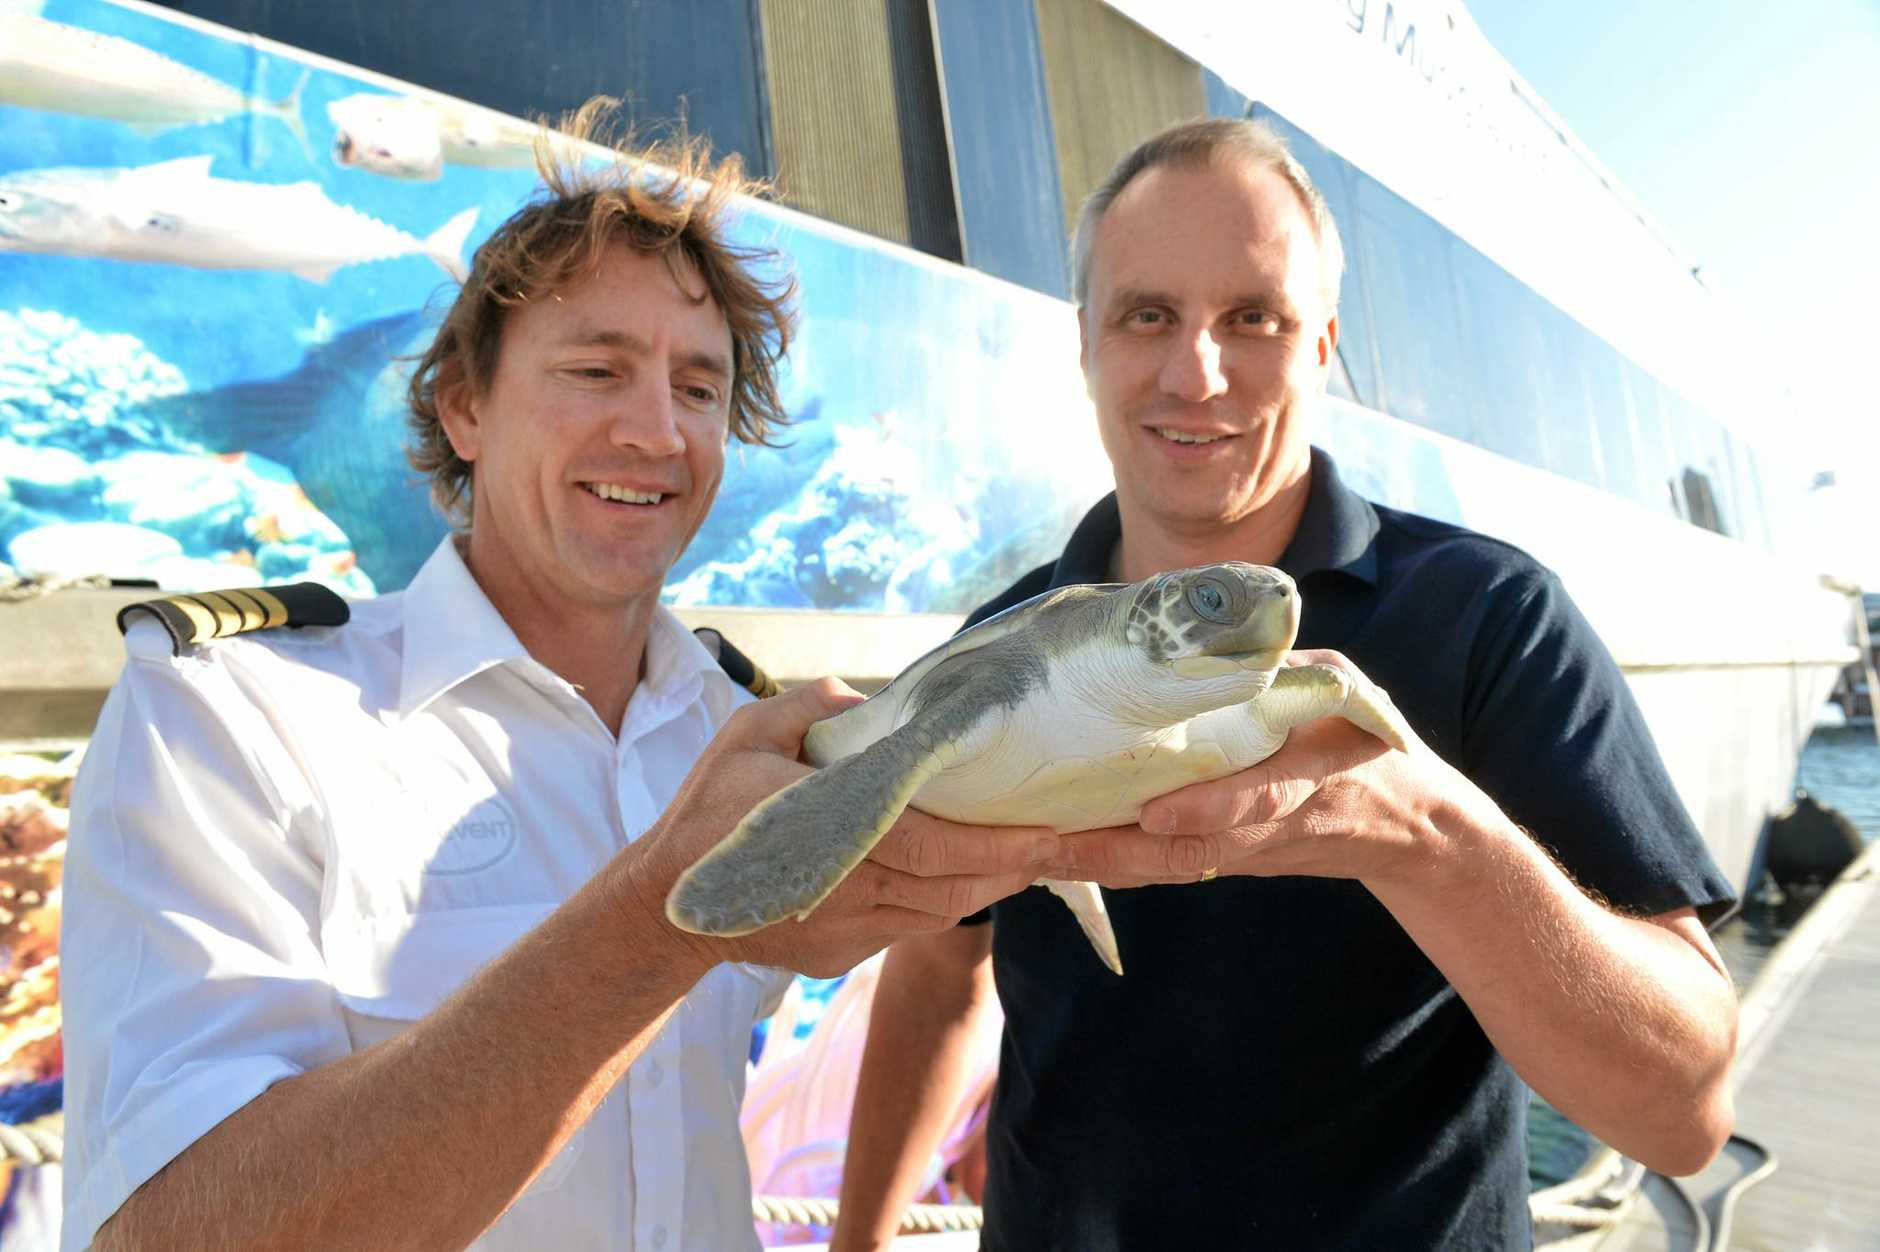 Brett Lakey and Aaron Sprowl get ready to release a juvenile flatback that was rescued sick and injured from waters near Sydney